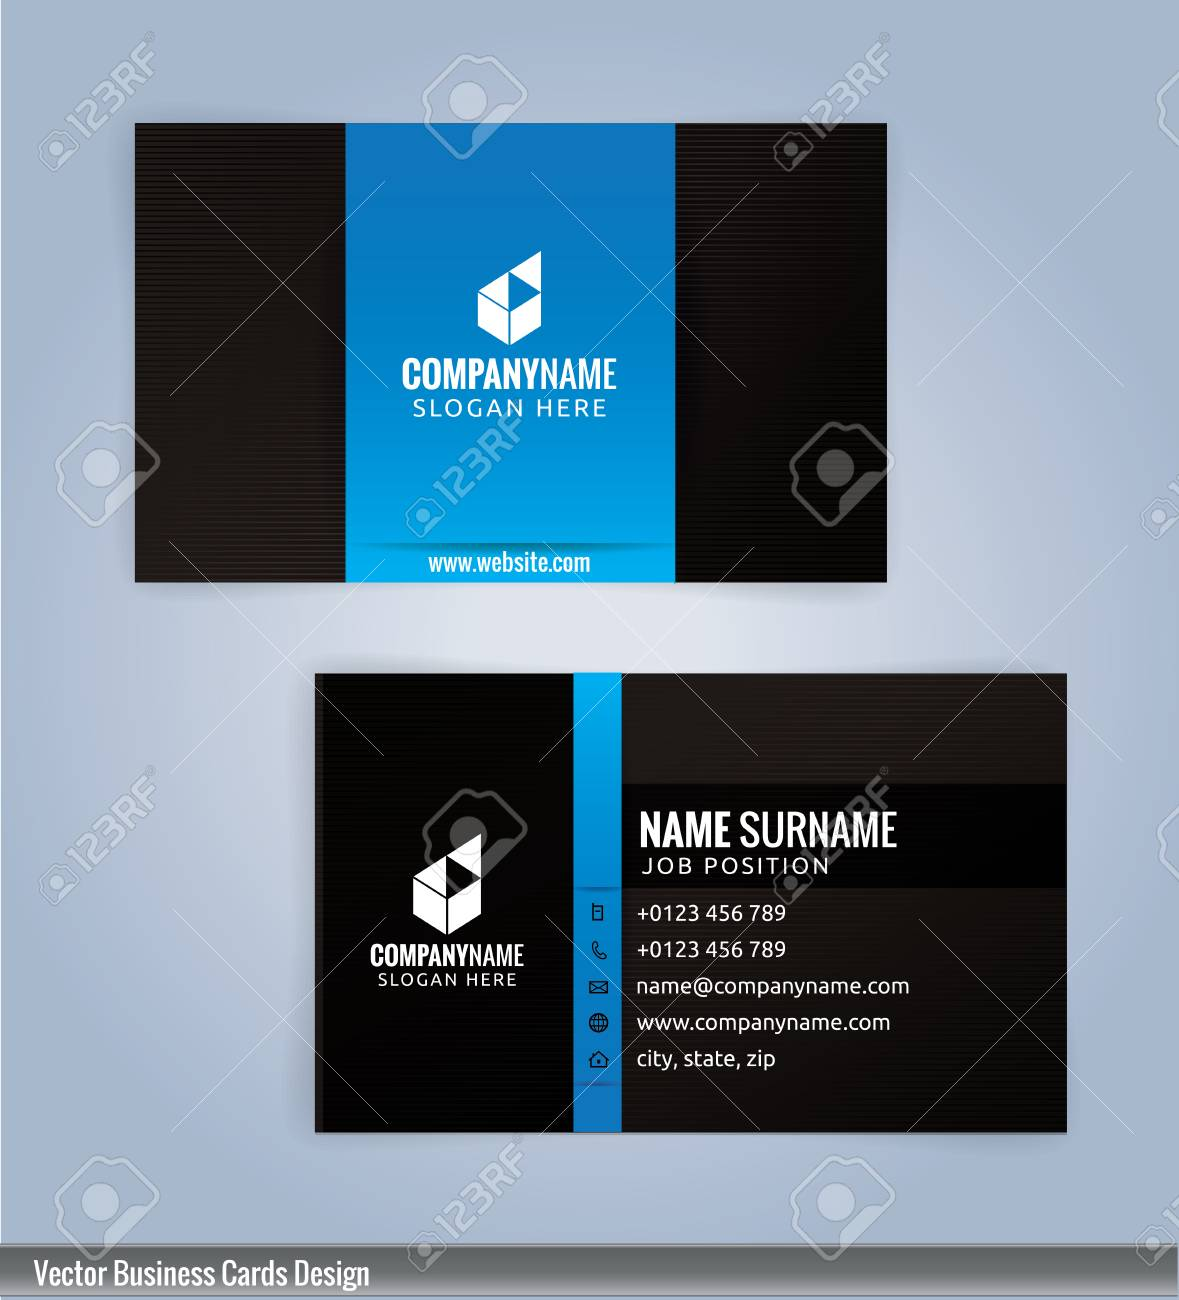 Black and blue modern business card template illustration royalty black and blue modern business card template illustration stock vector 53961298 cheaphphosting Gallery